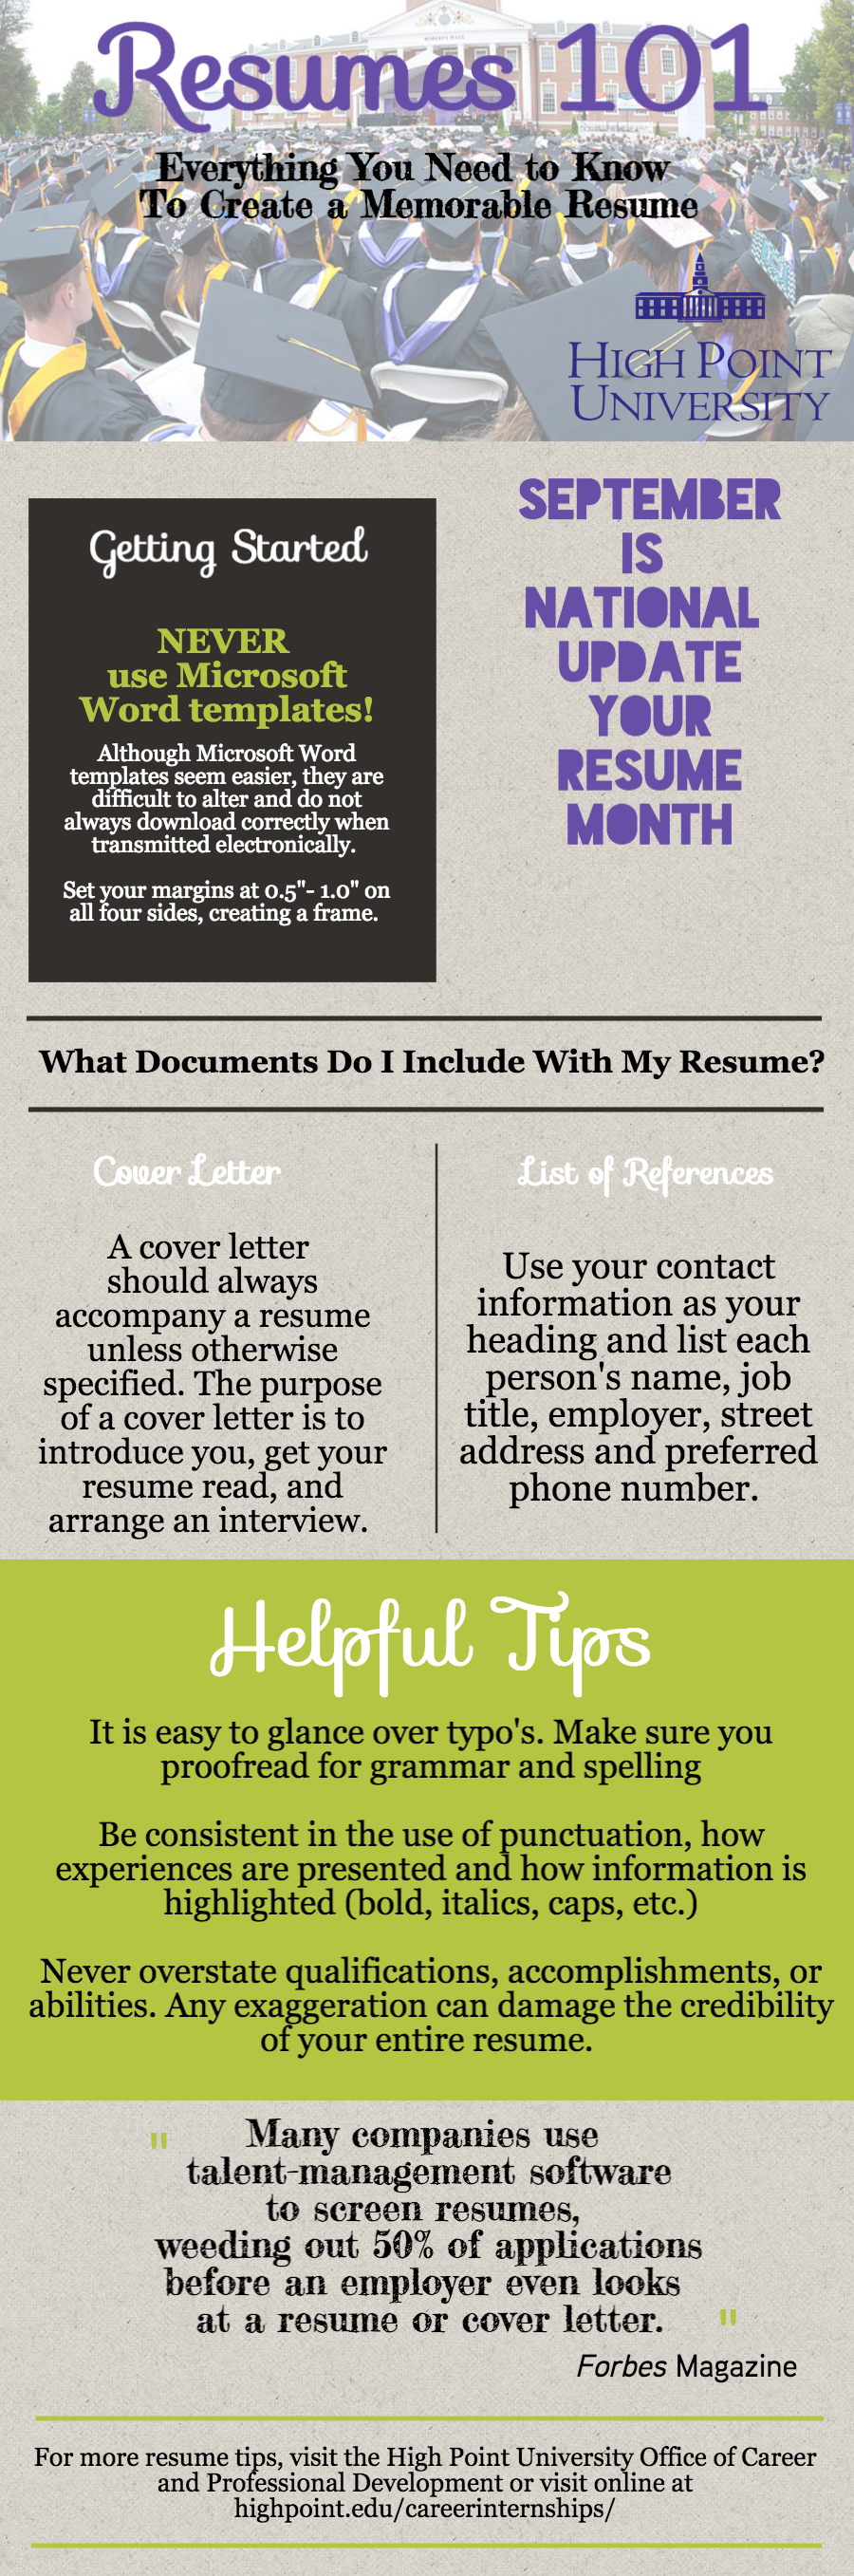 Resumes 101 Sept. 17